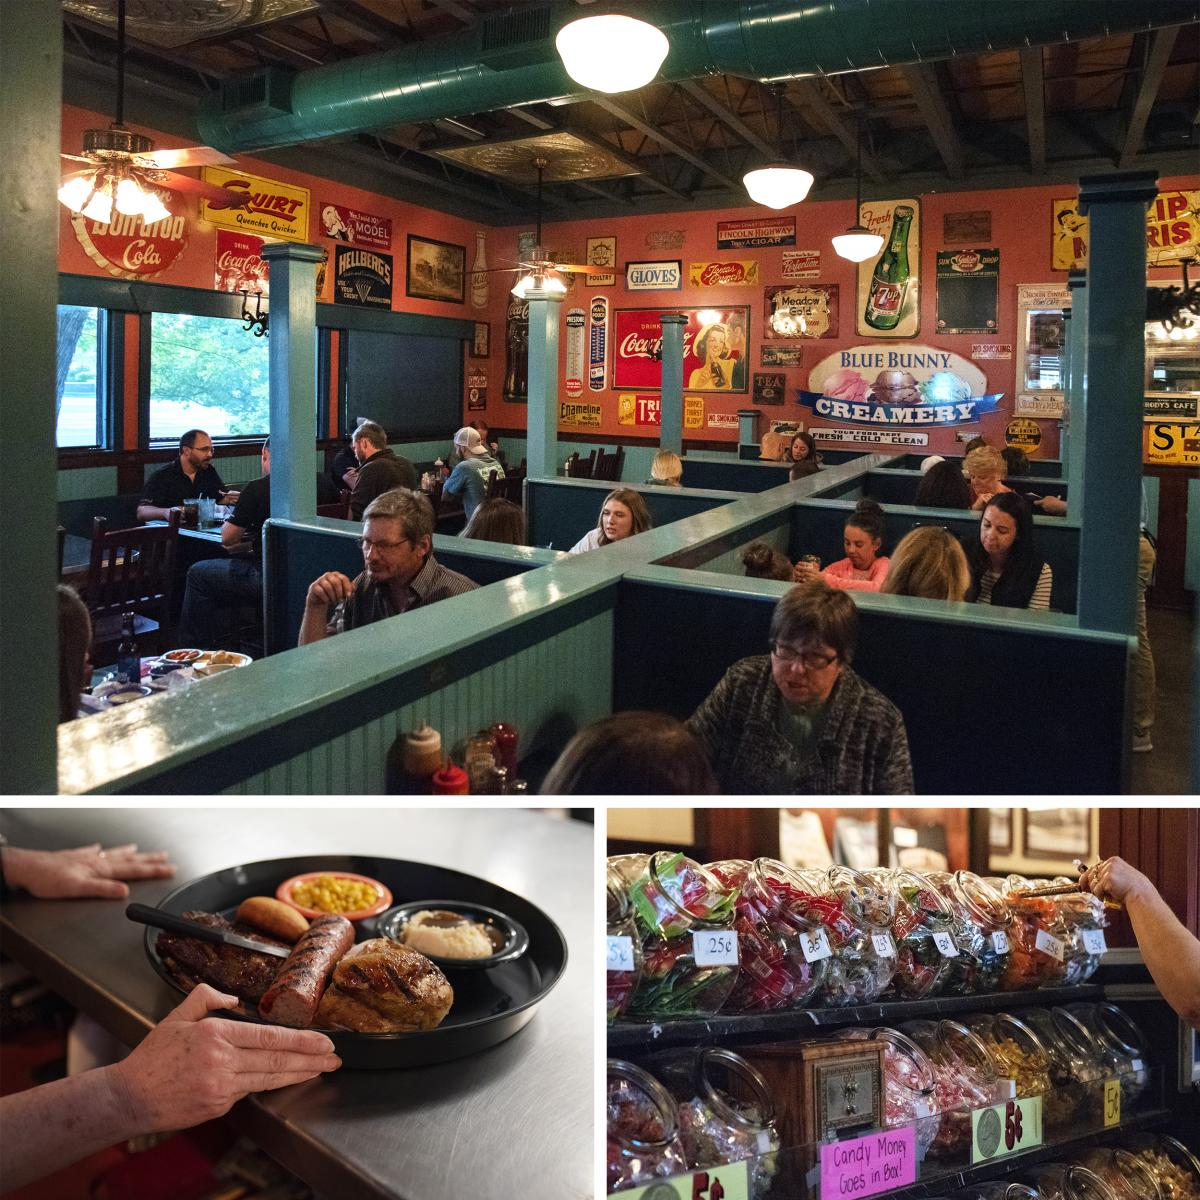 About 16,000 guests are served at Hickory Park each week. At one time, all the restaurant had to do to fill positions was post a notice on the university job board and stacks of applications poured in, Kopecky says. These days, the restaurant hires just a